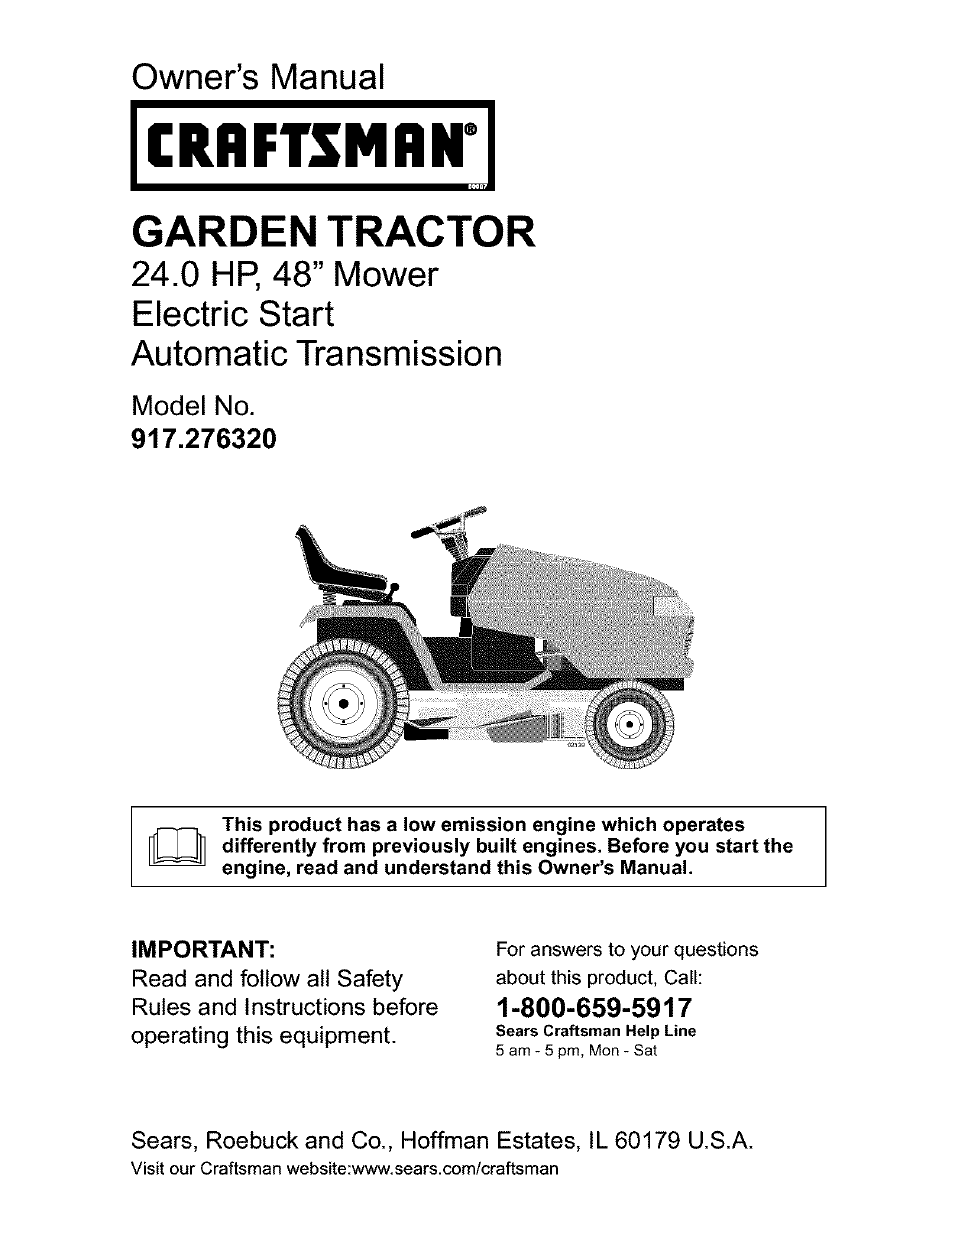 Craftsman 917 276320 User Manual